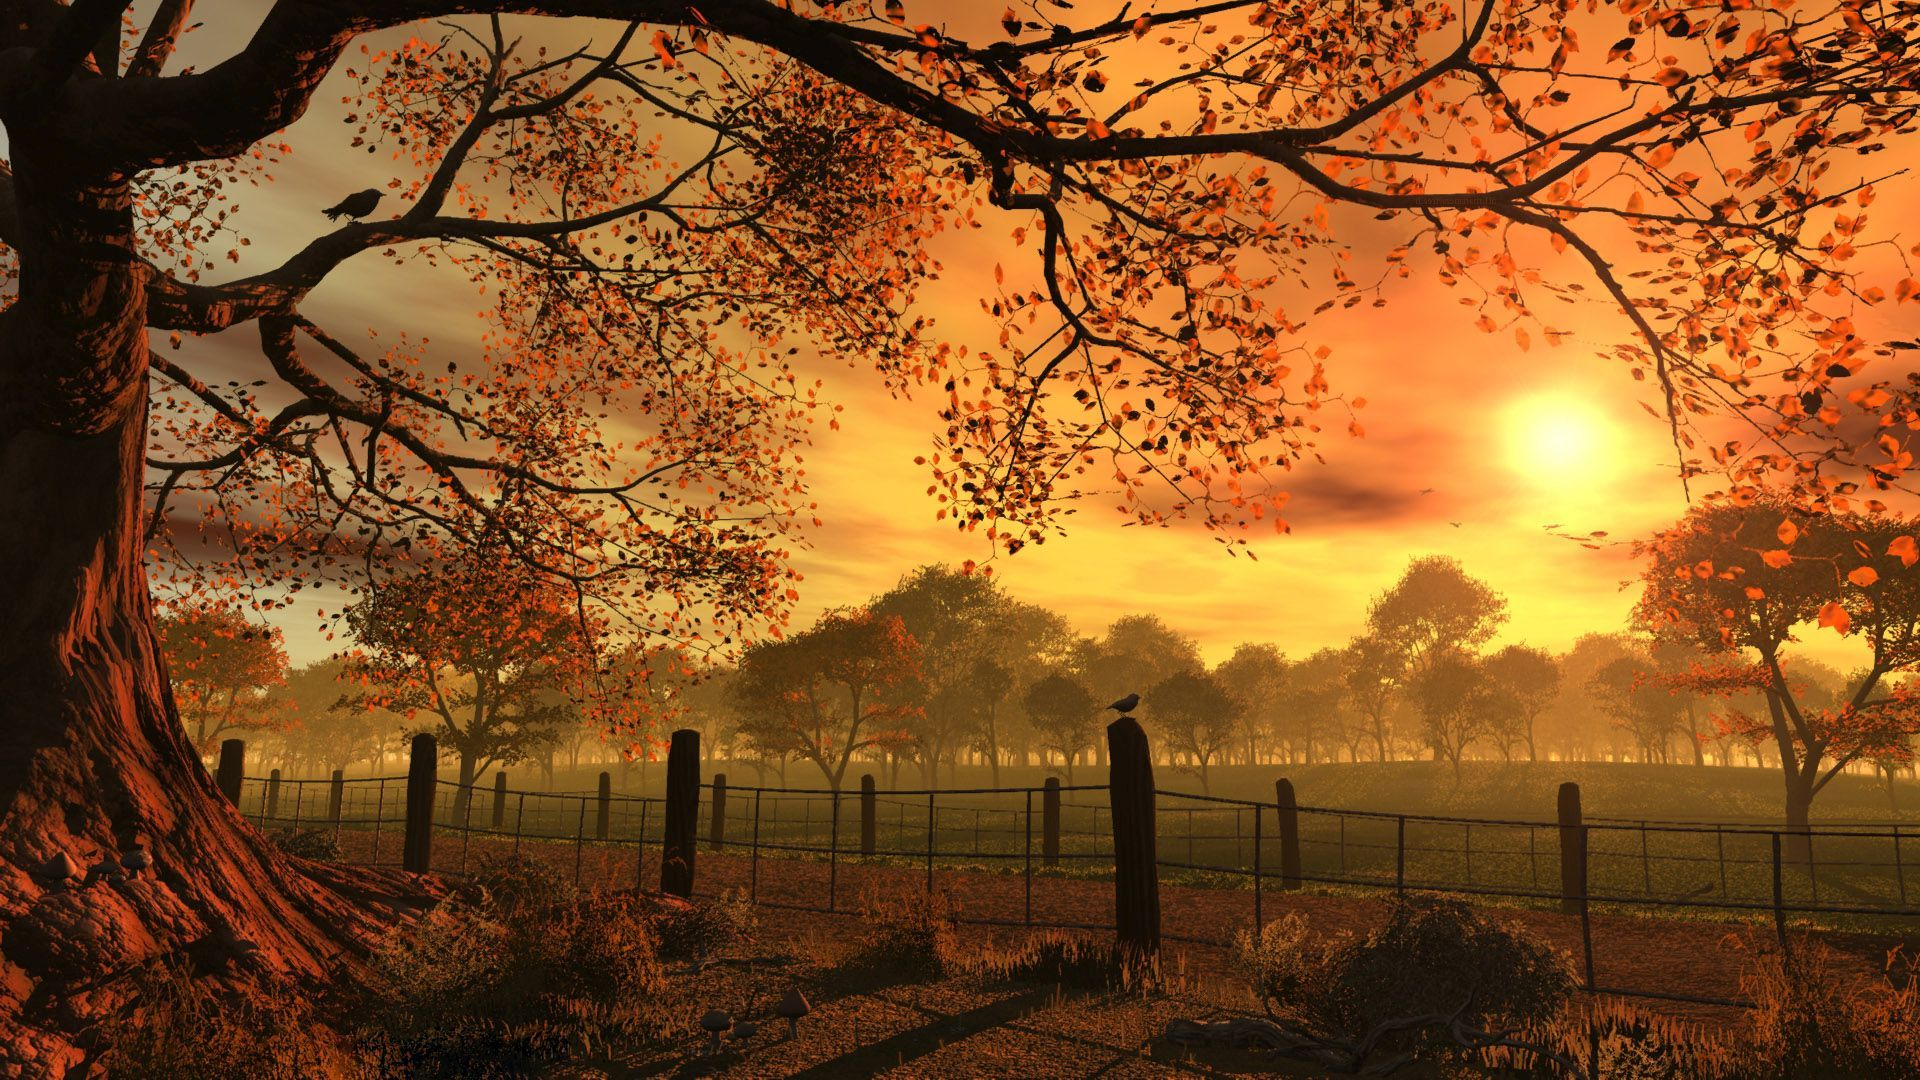 Falling Leaves Wallpaper Screensavers Sit Back And Relax With These Sunset Wallpapers